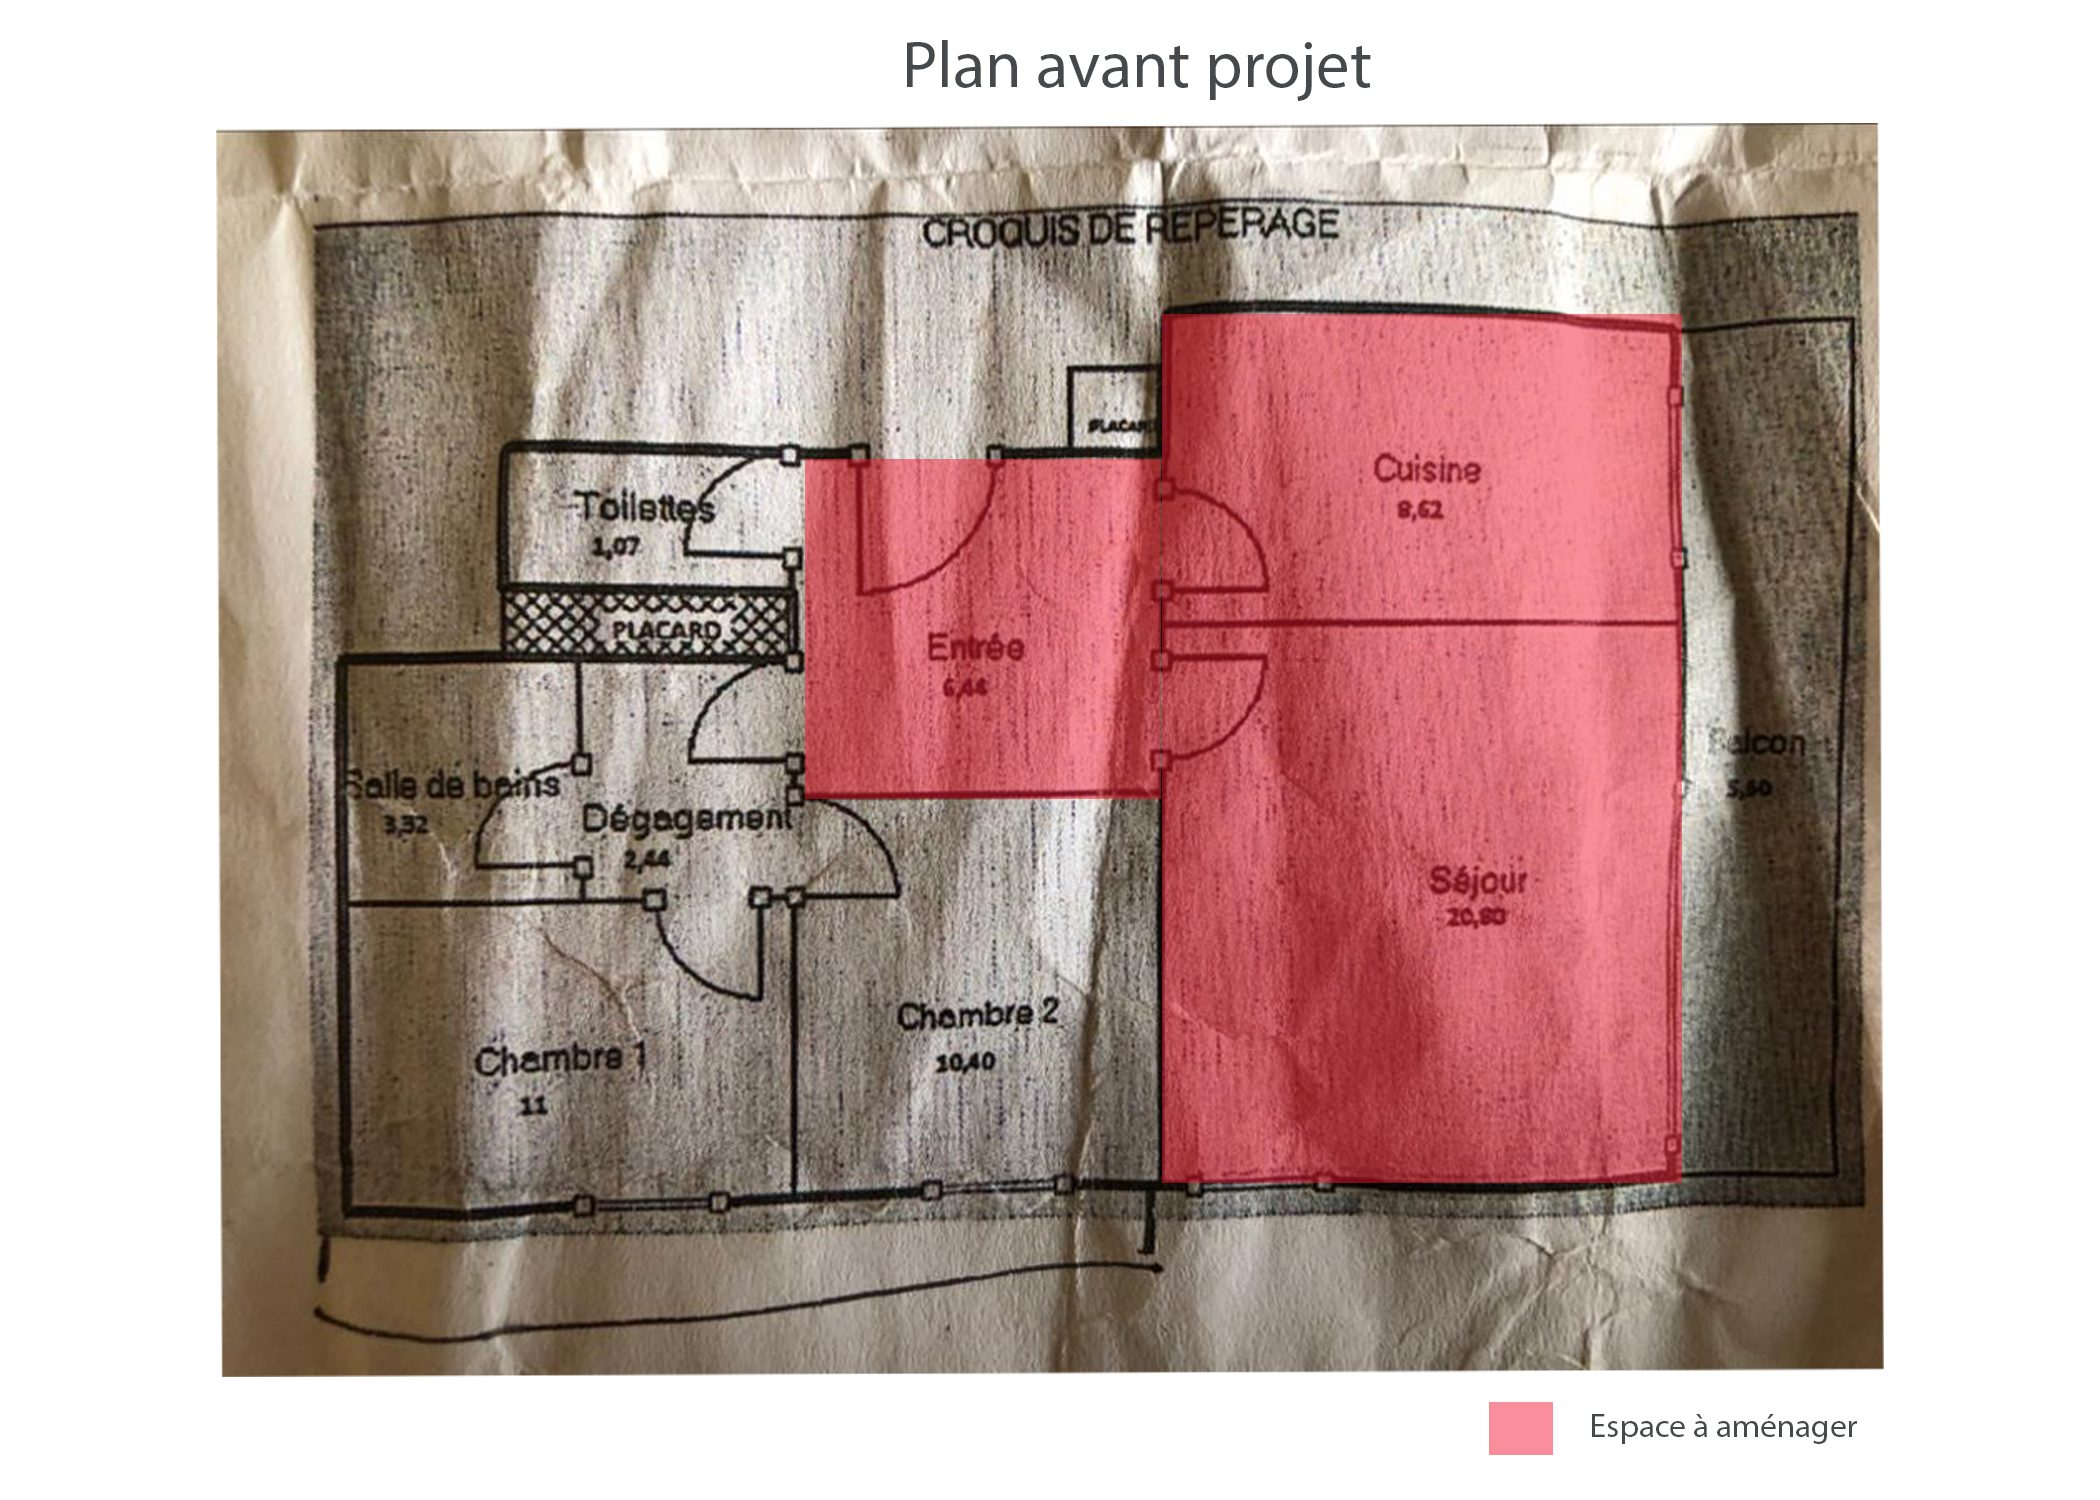 amenagement-decoration-appartement-region parisienne-plan avant projet-dekho design